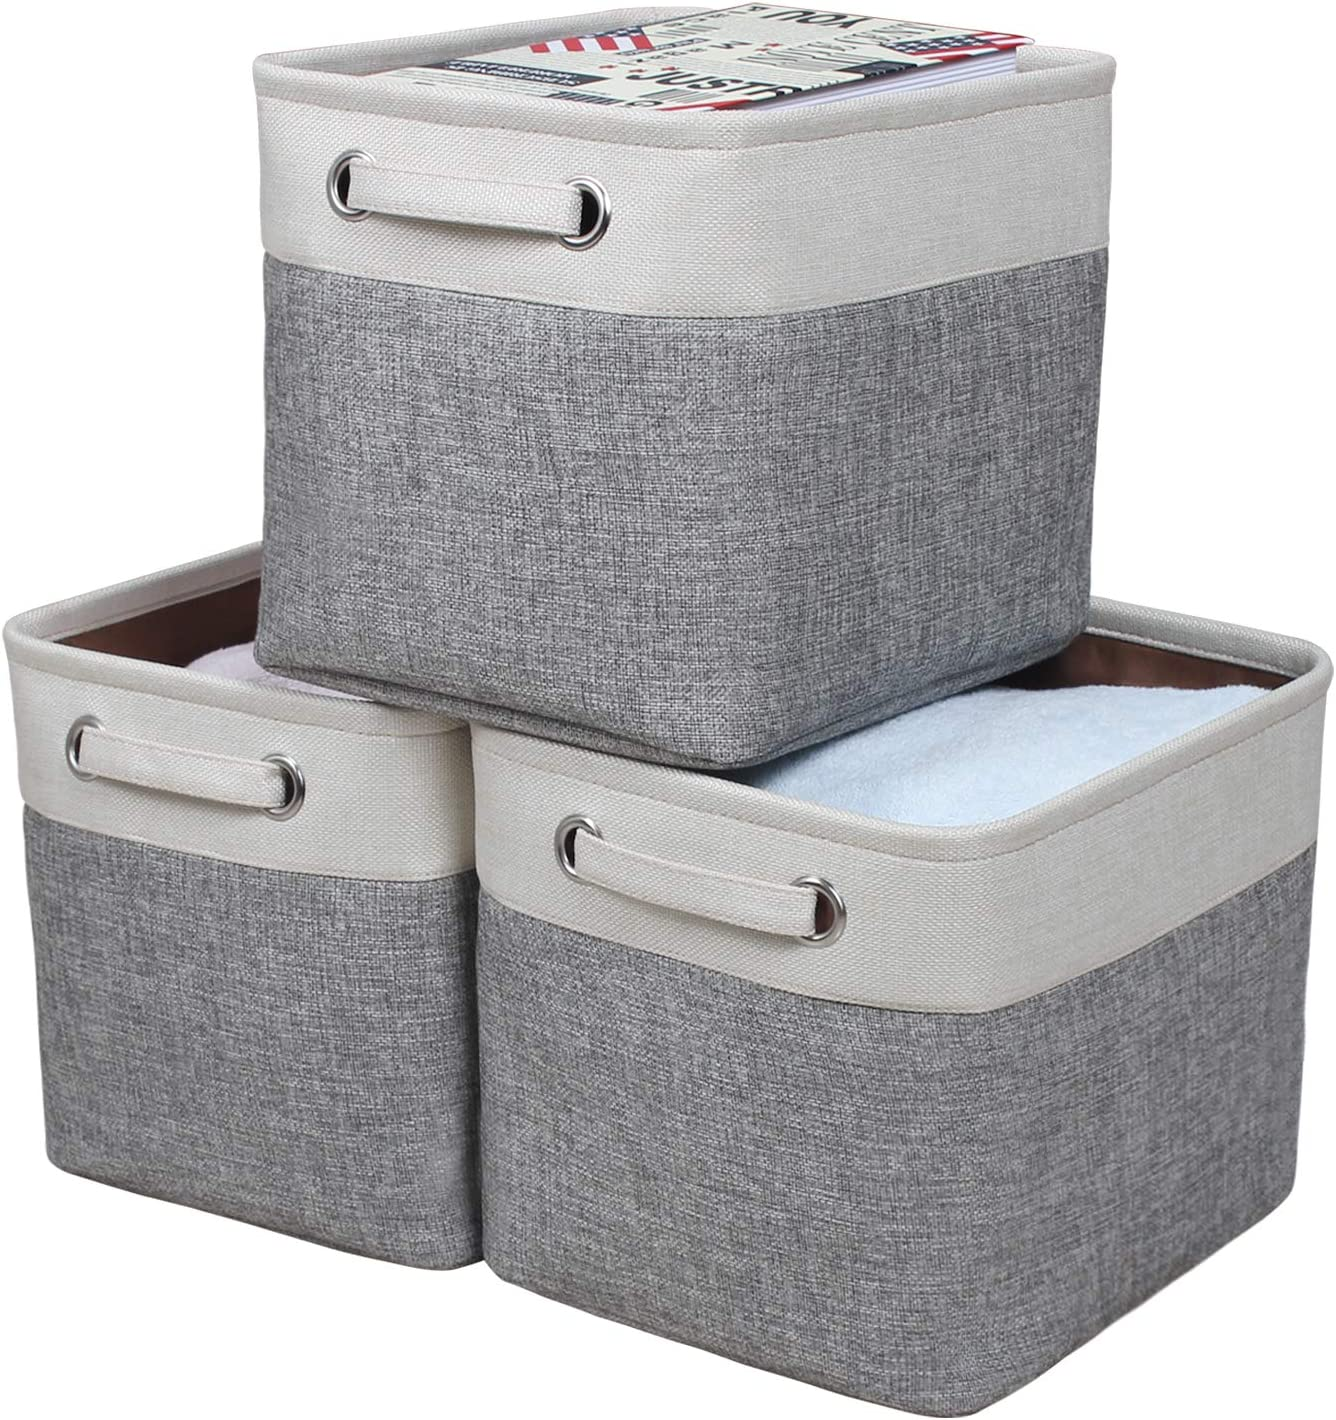 Kntiwiwo Foldable Storage Bin Collapsible Basket Cube Storage Organizer Bins with Carry Handles for Home Closet Nursery Drawers Cube Organizer, Set of 3